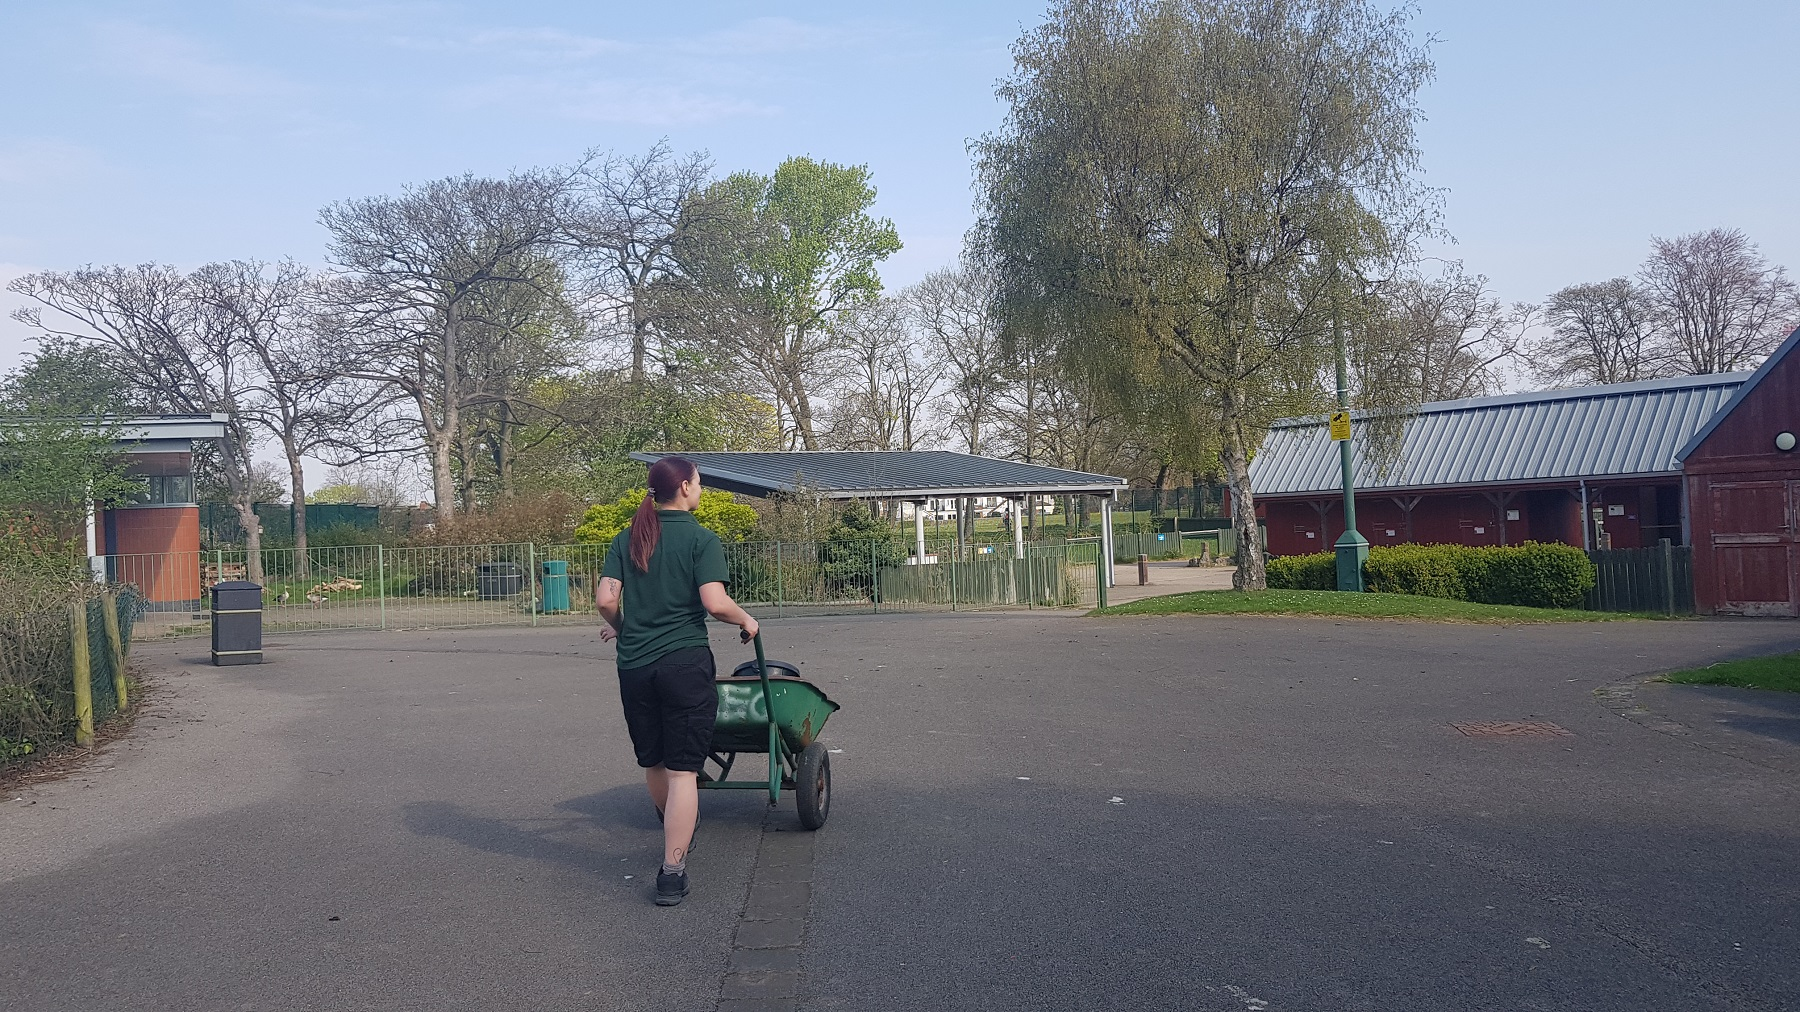 A zookeeper at East Park's Animal Education Centre